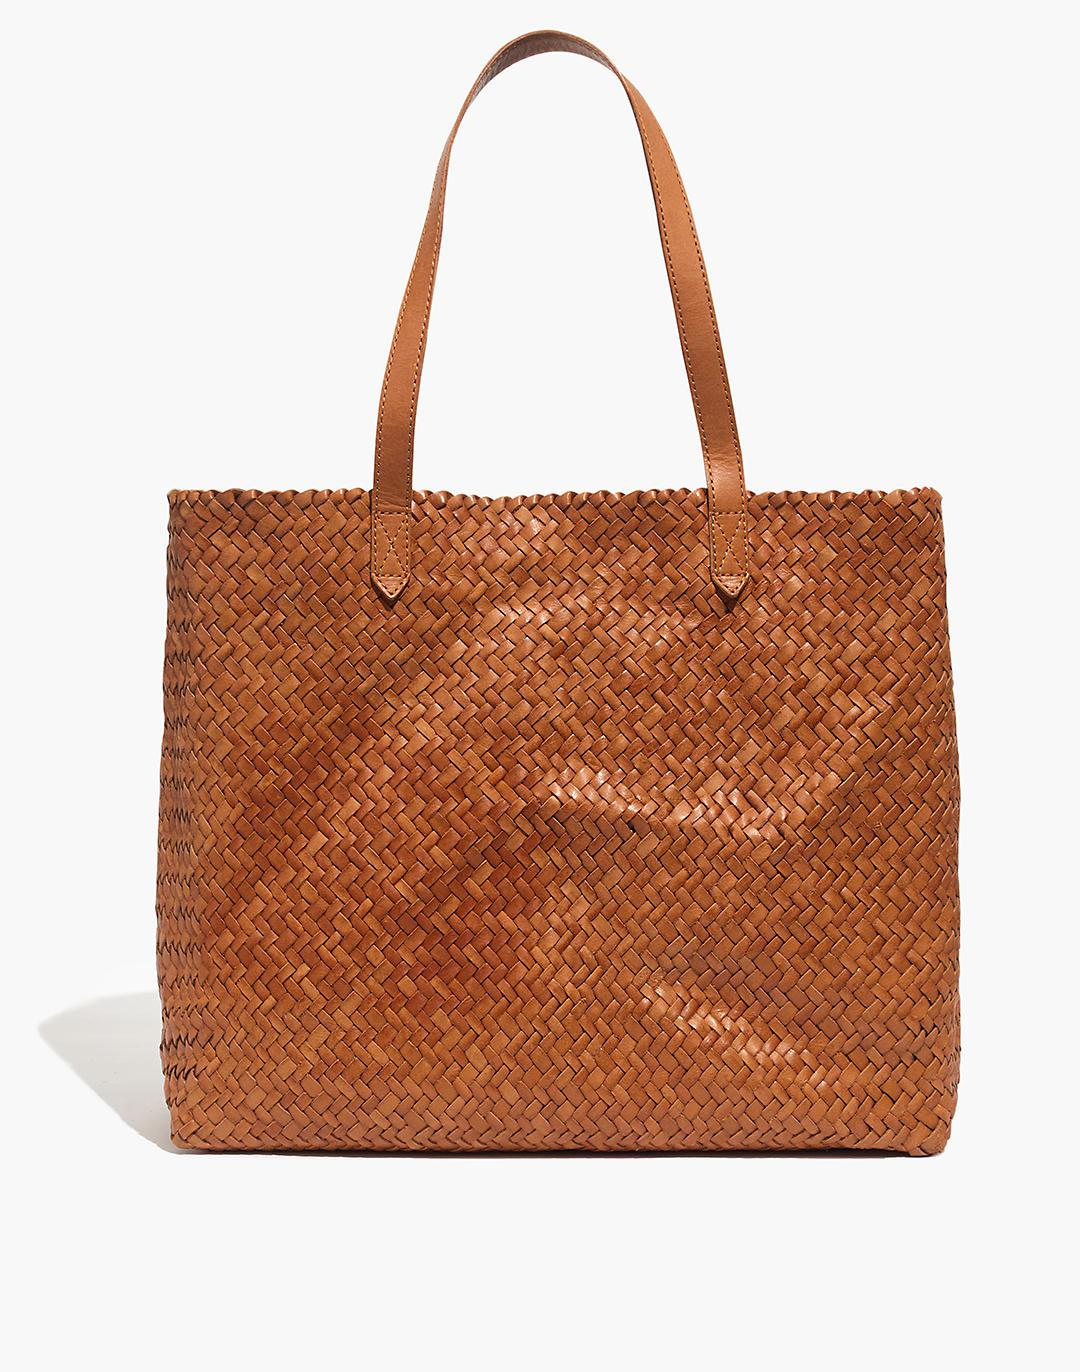 The Transport Tote: Woven Leather Edition